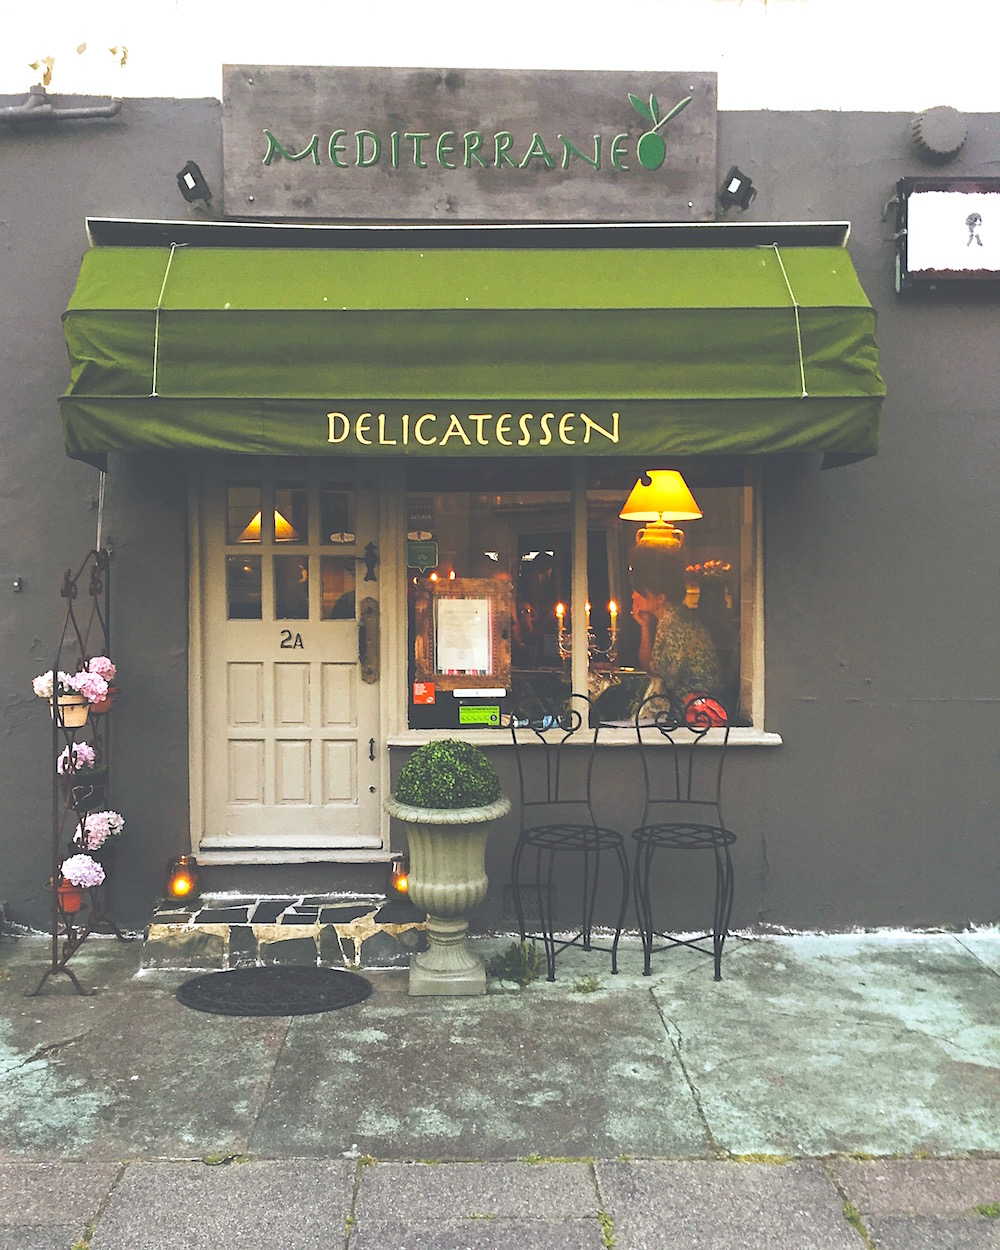 mediterraneo deli brighton local gem restaurant